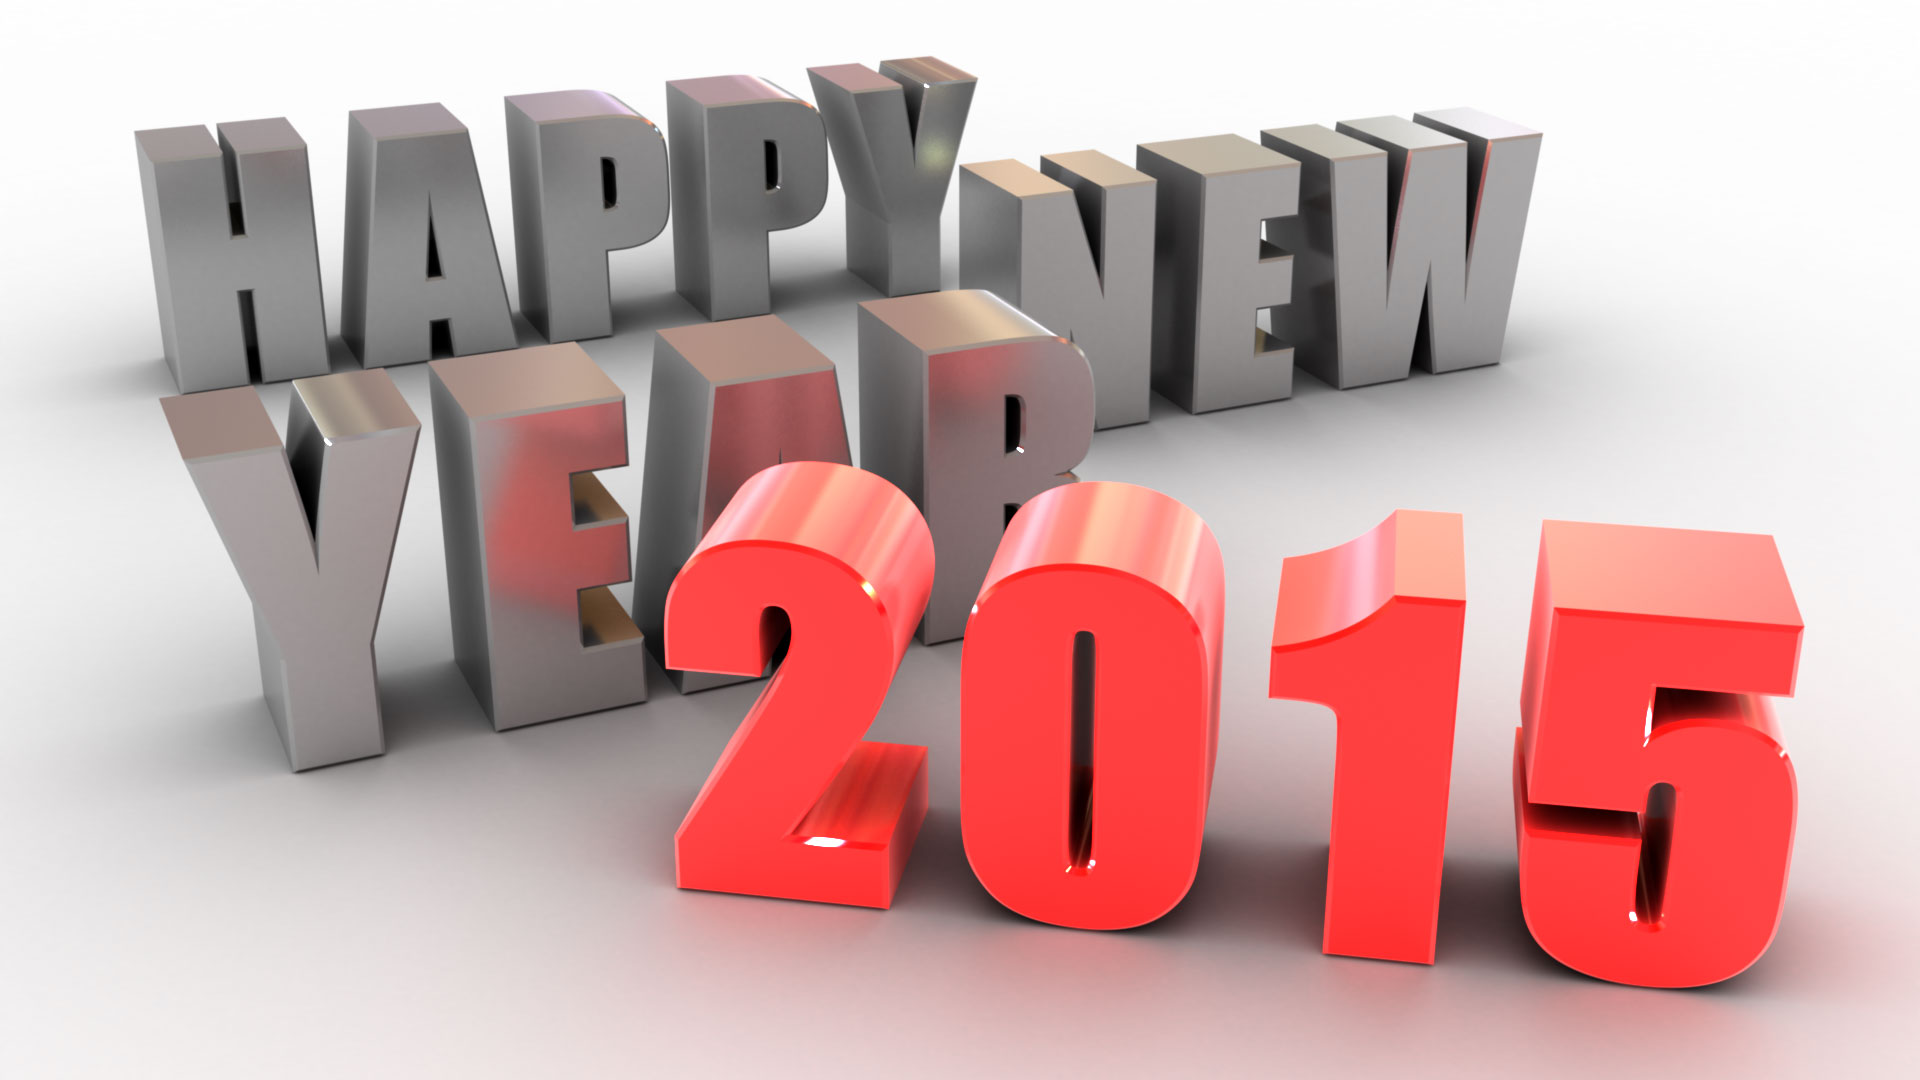 new years eve clipart 2015 - photo #5